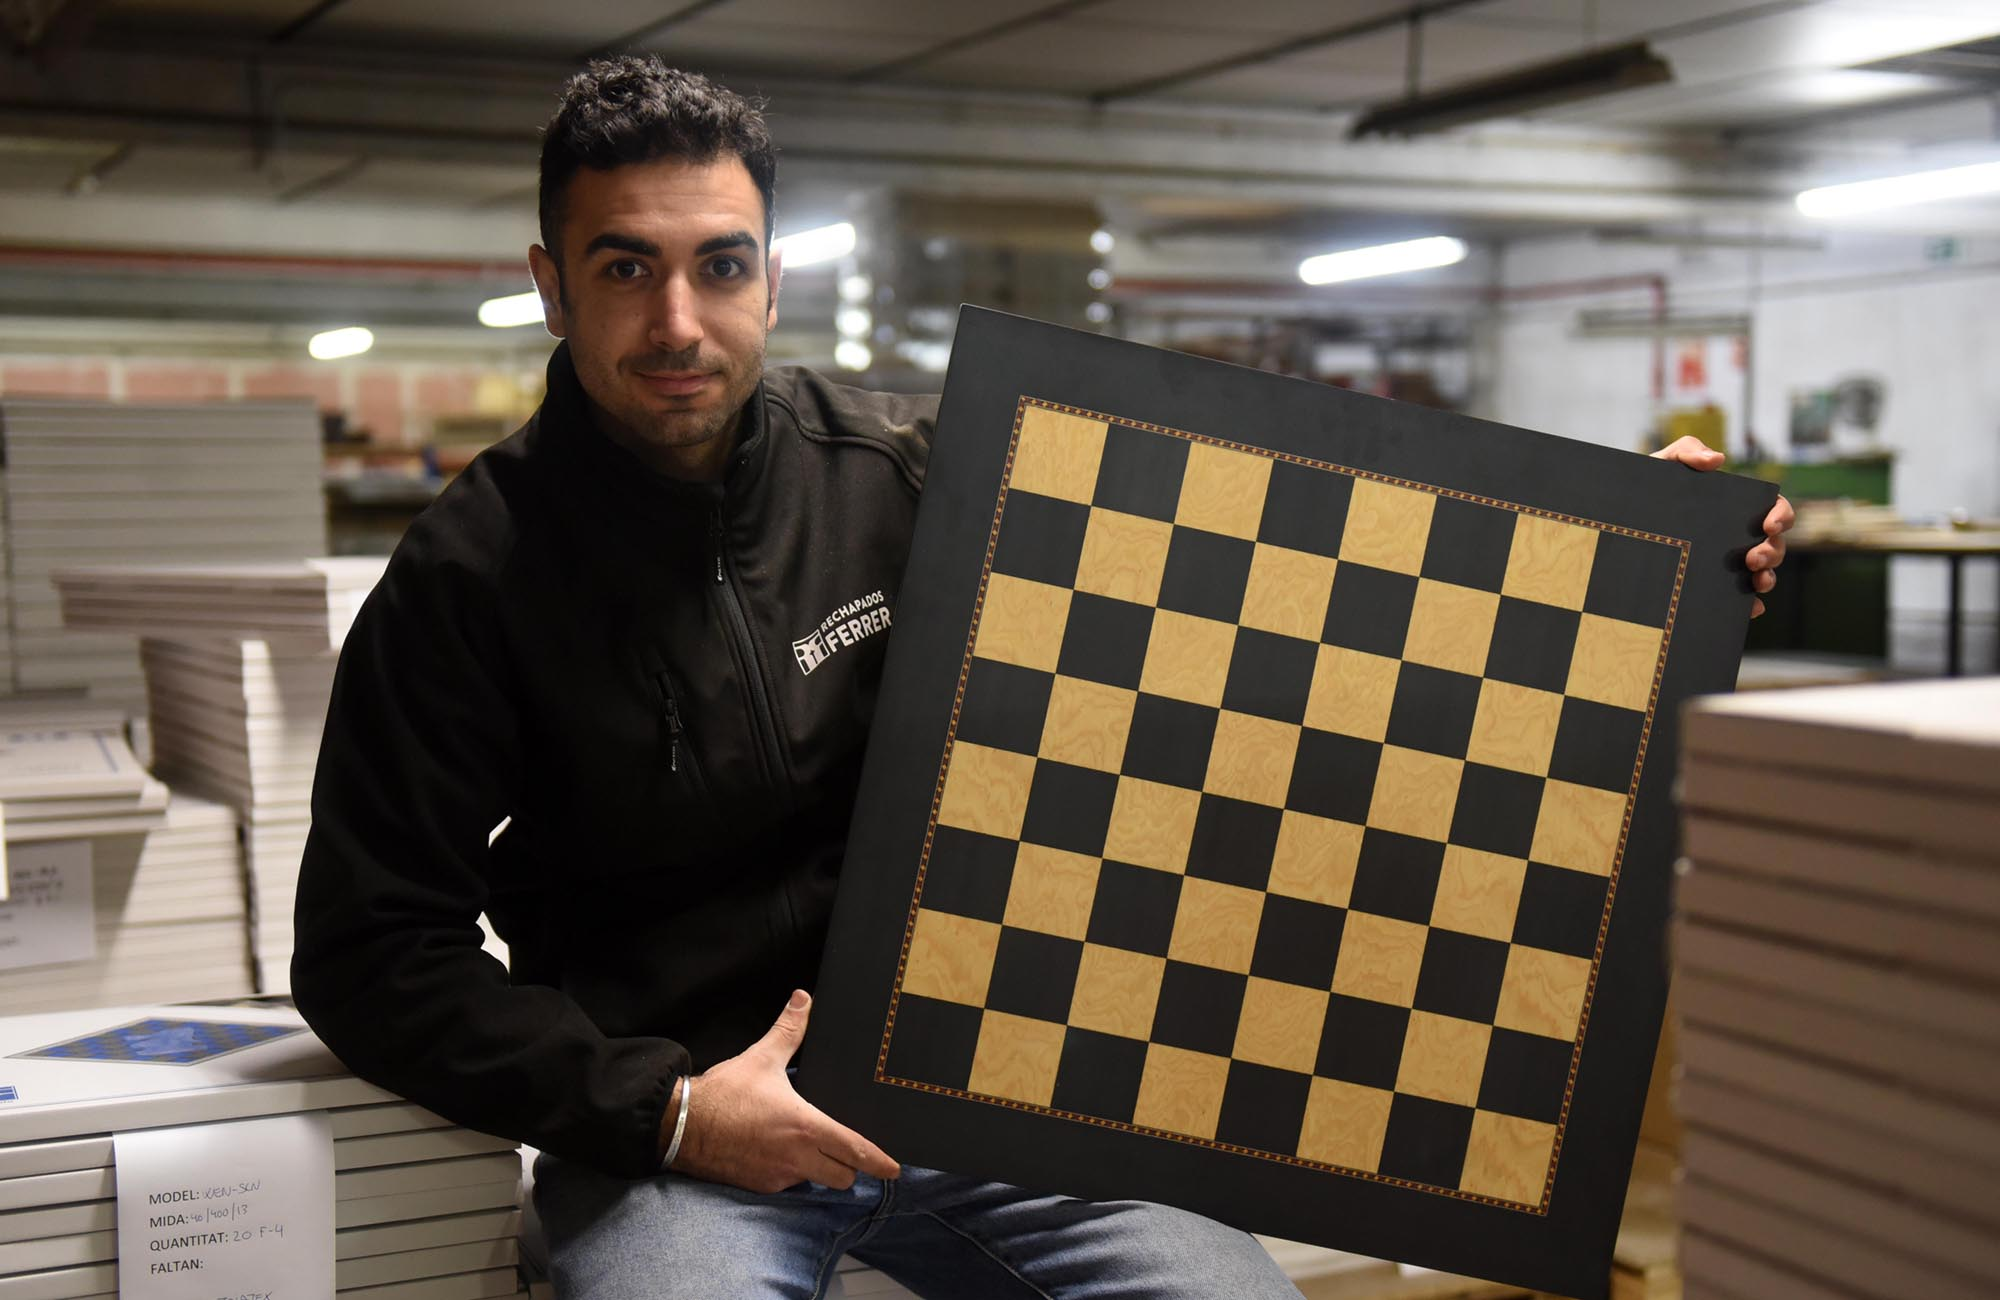 Pawn Star: The Queen's Gambit Chess Board That's Sold Out Until Next Year